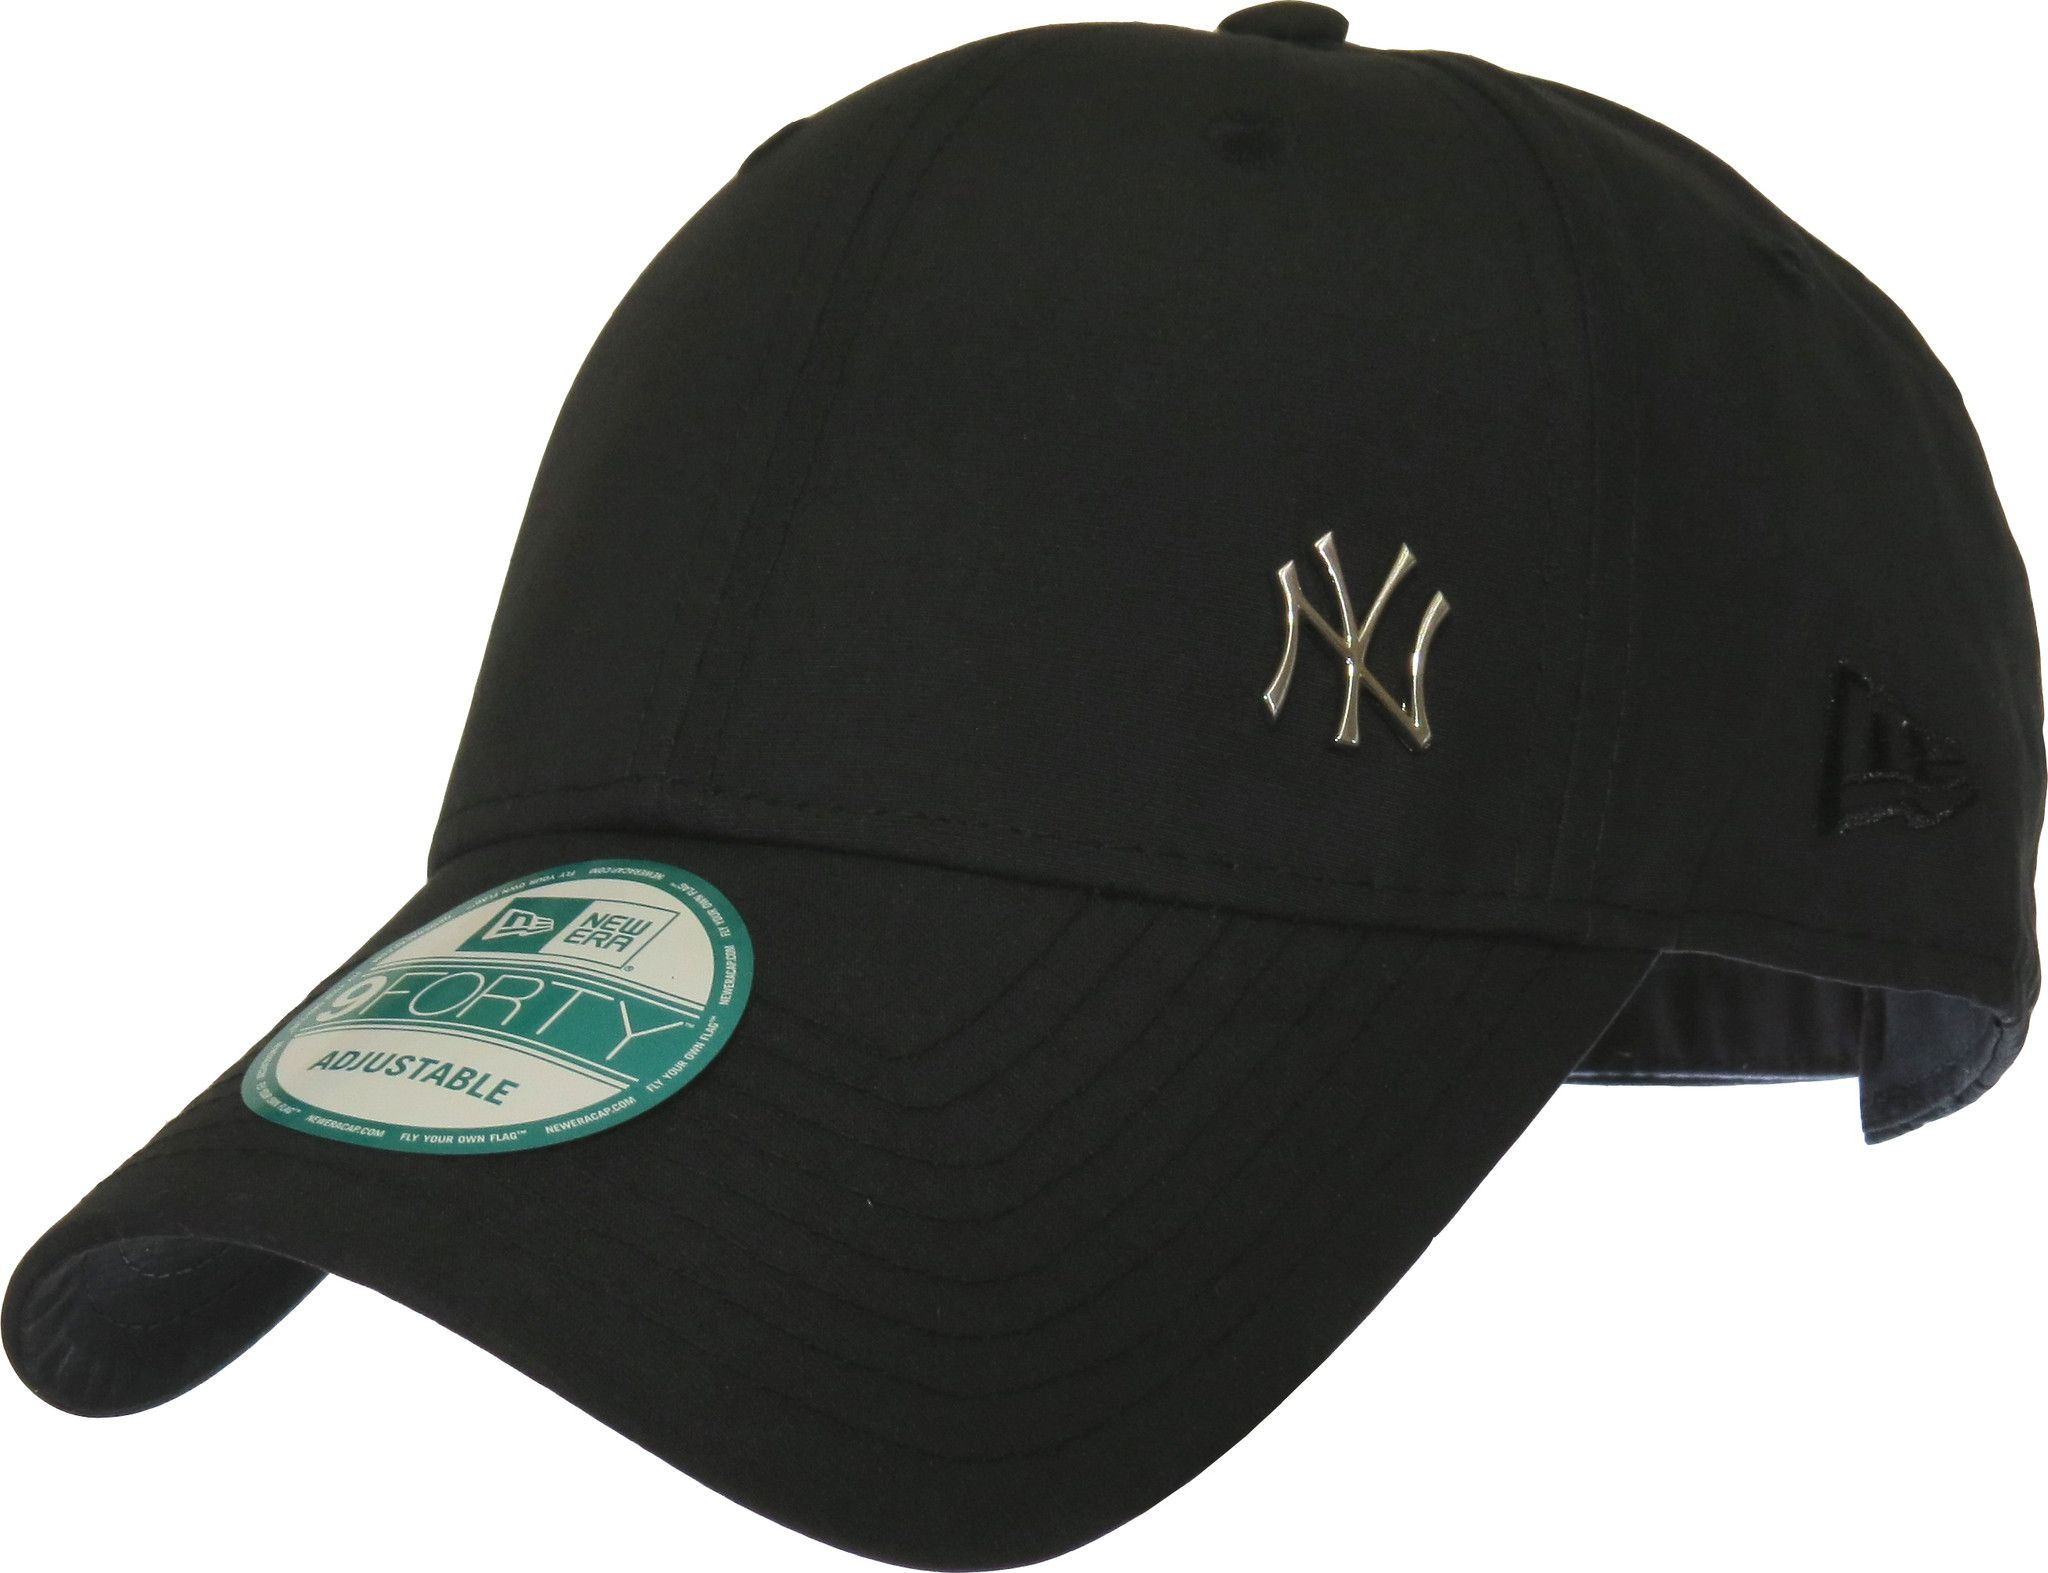 34d154d70a8 New Era 940 Flawless NY Black Baseball Cap in 2019